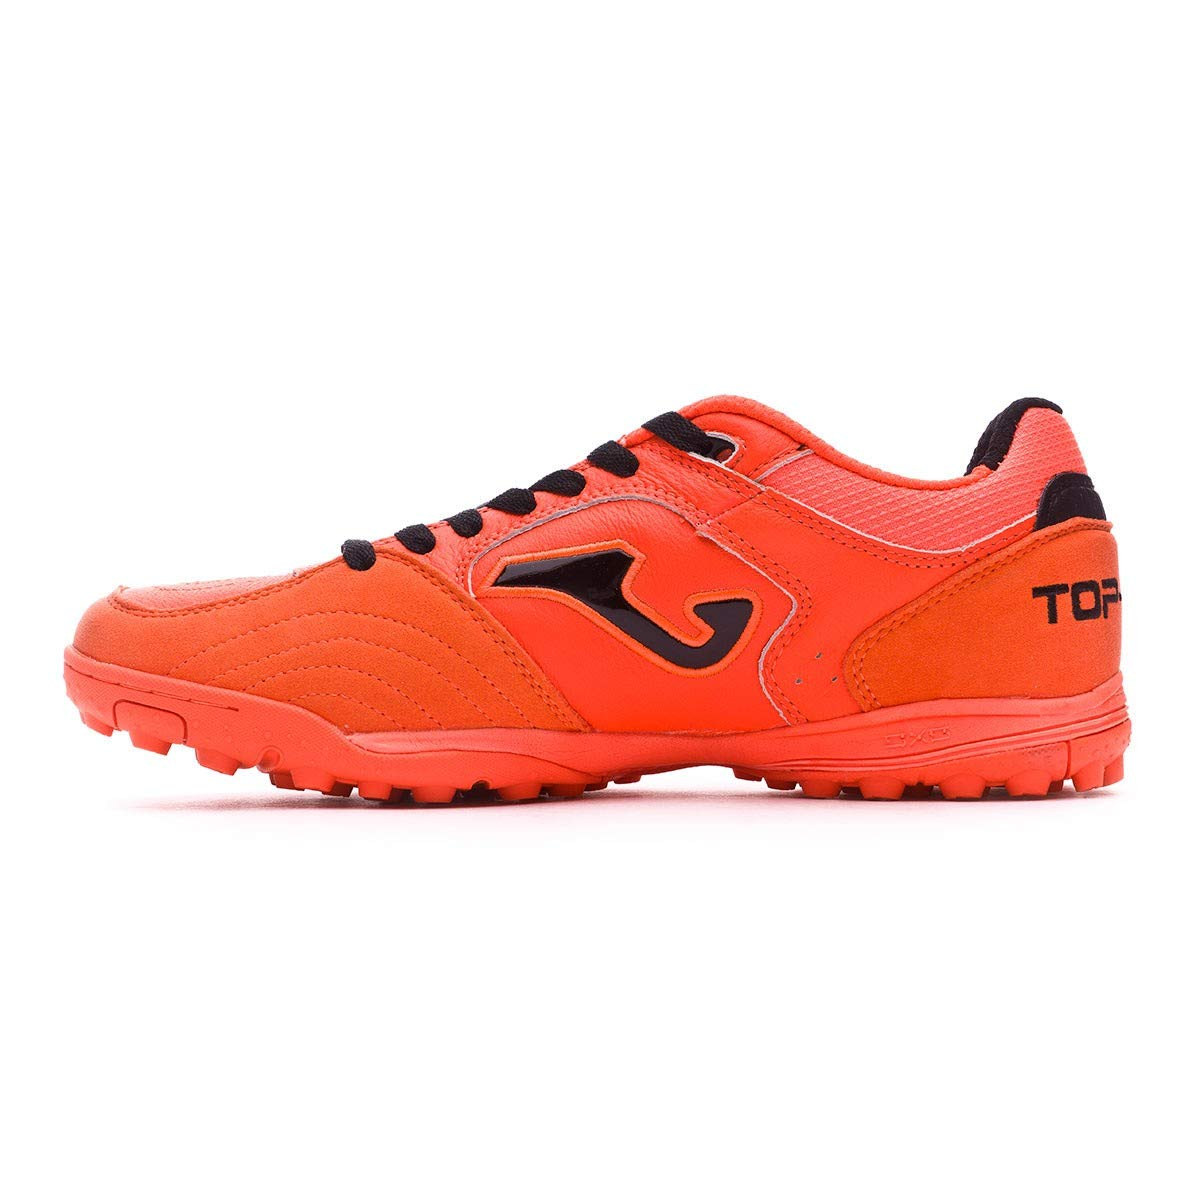 Joma Top Flex 807 Coral Turf - Scarpa Scarpa Scarpa Calcetto Uomo - TOPS.807.TF (EU 39 - CM 25 - UK 5.5 - US 6.5) 3a9b90